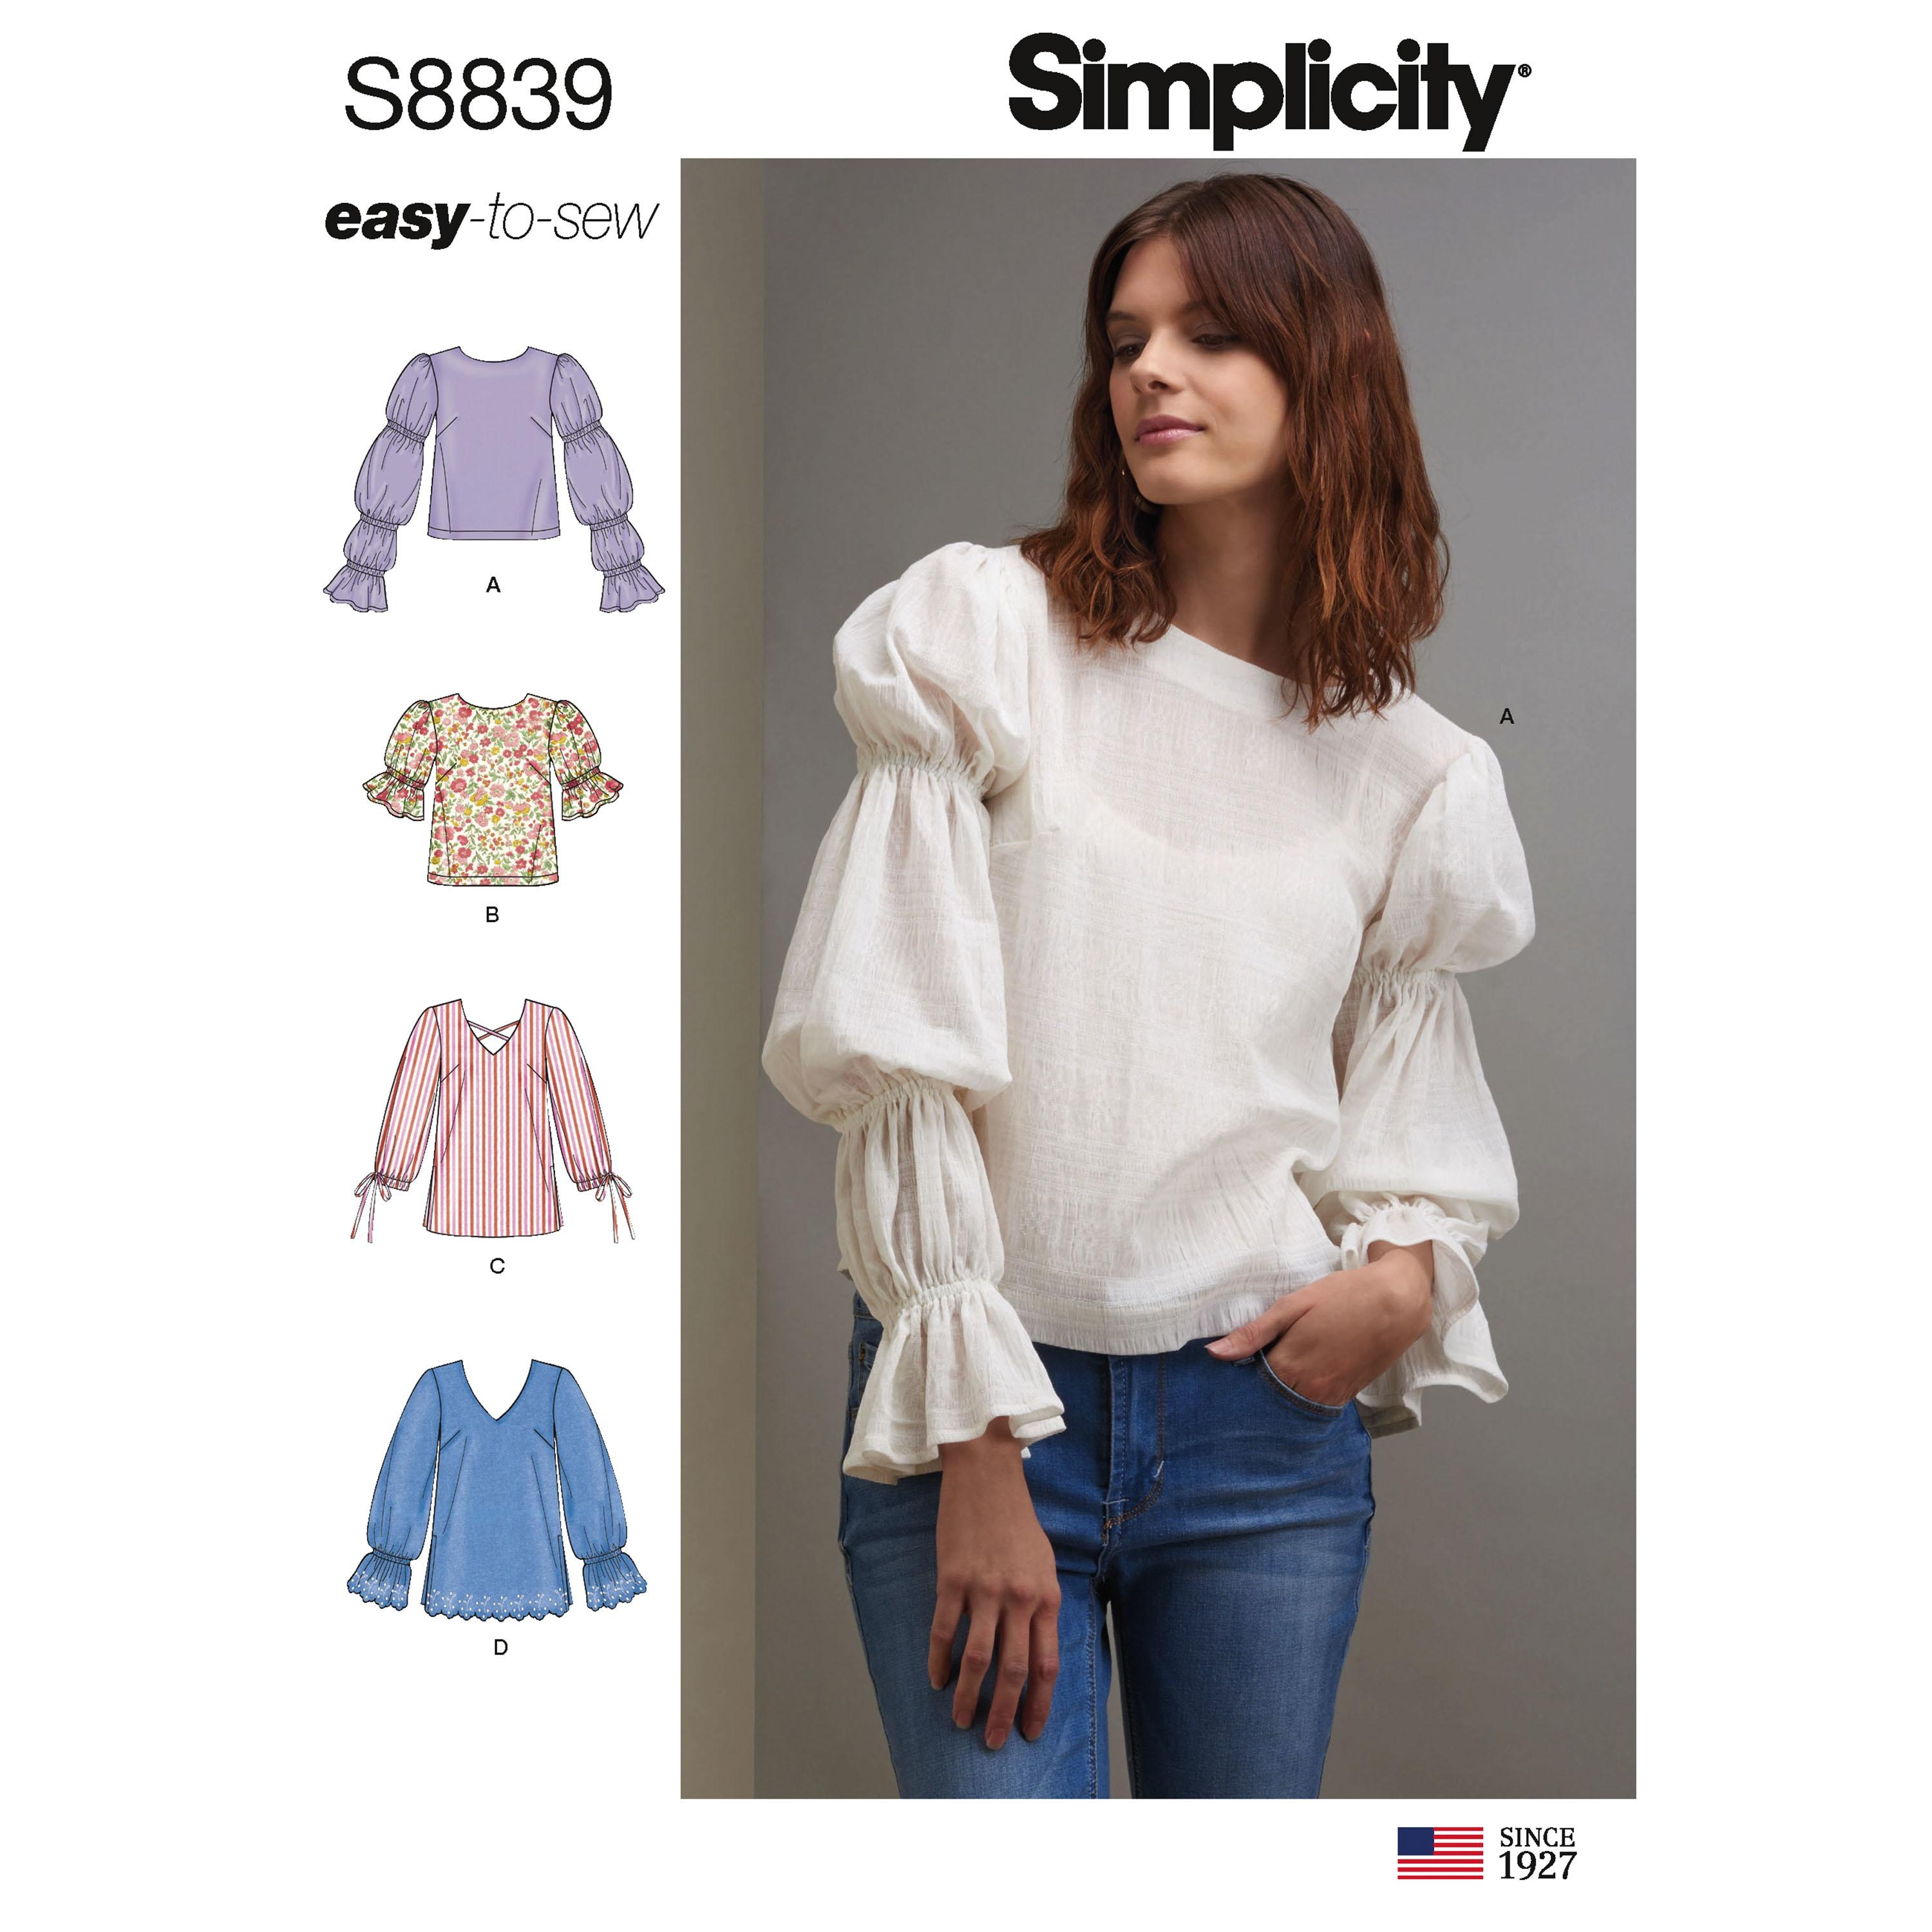 Simplicity S8839 Misses' Pullover Tunic or Tops